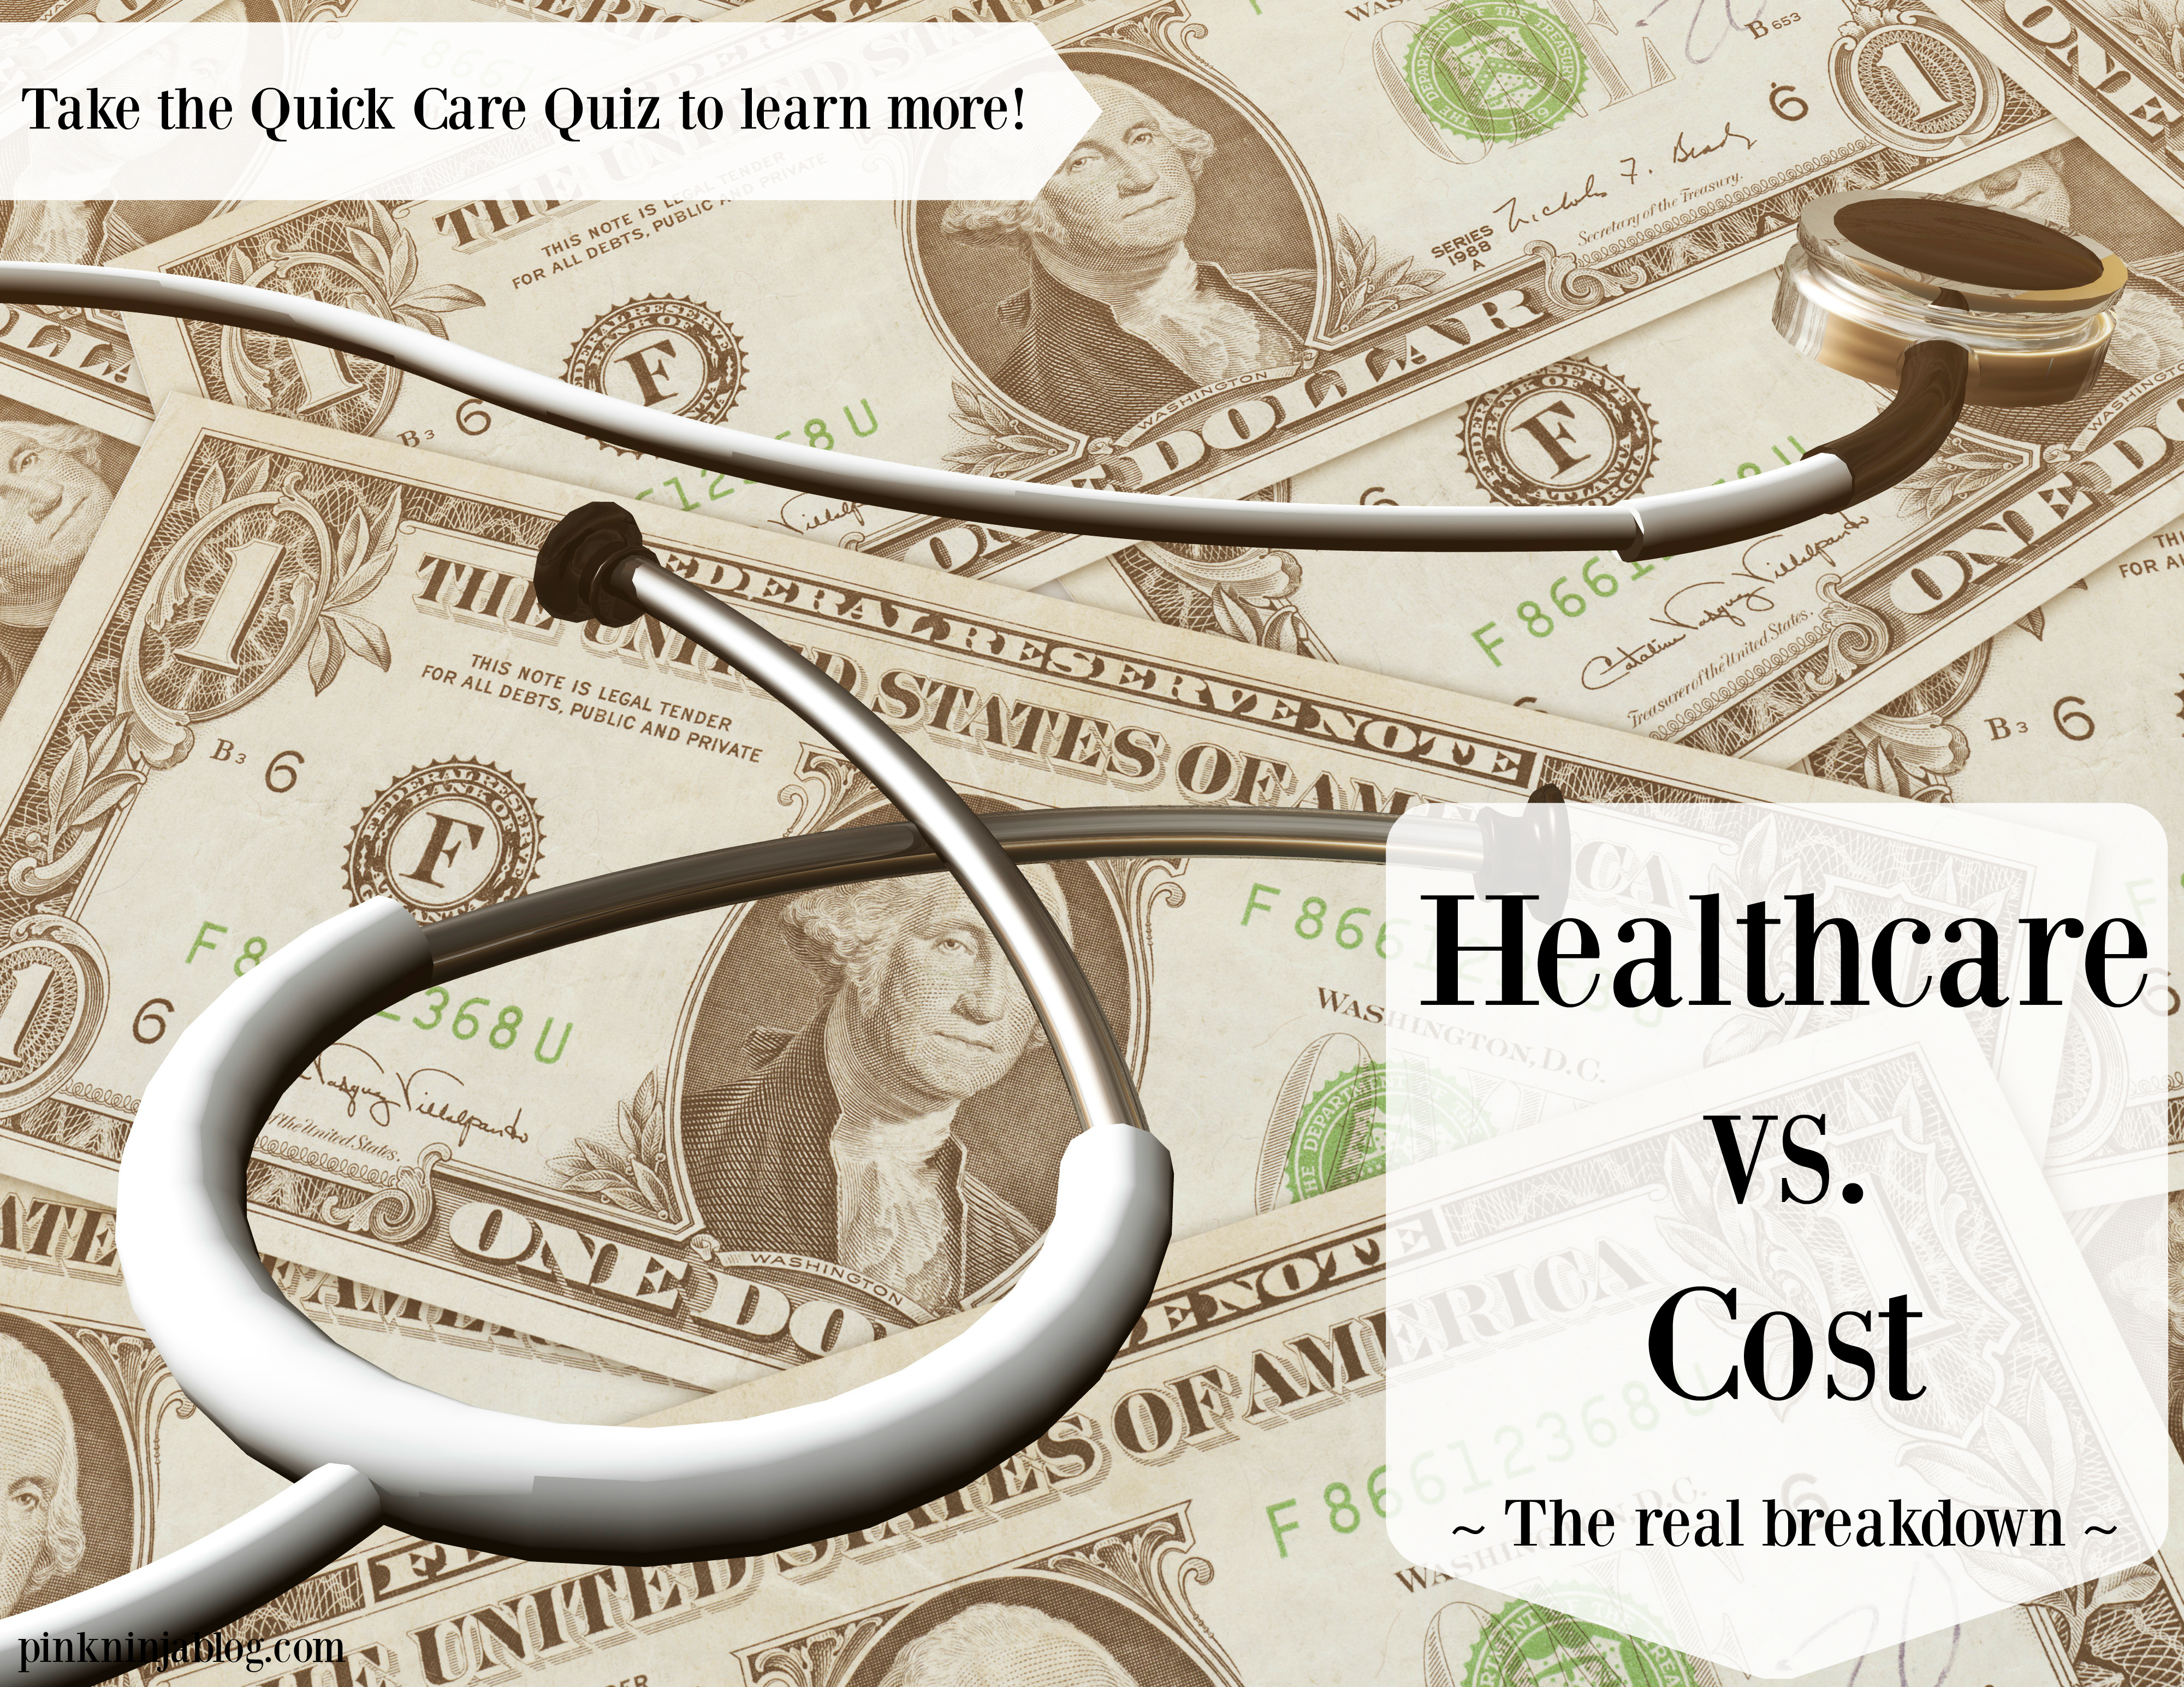 Quick Care Quiz + $100 Gift Card Giveaway